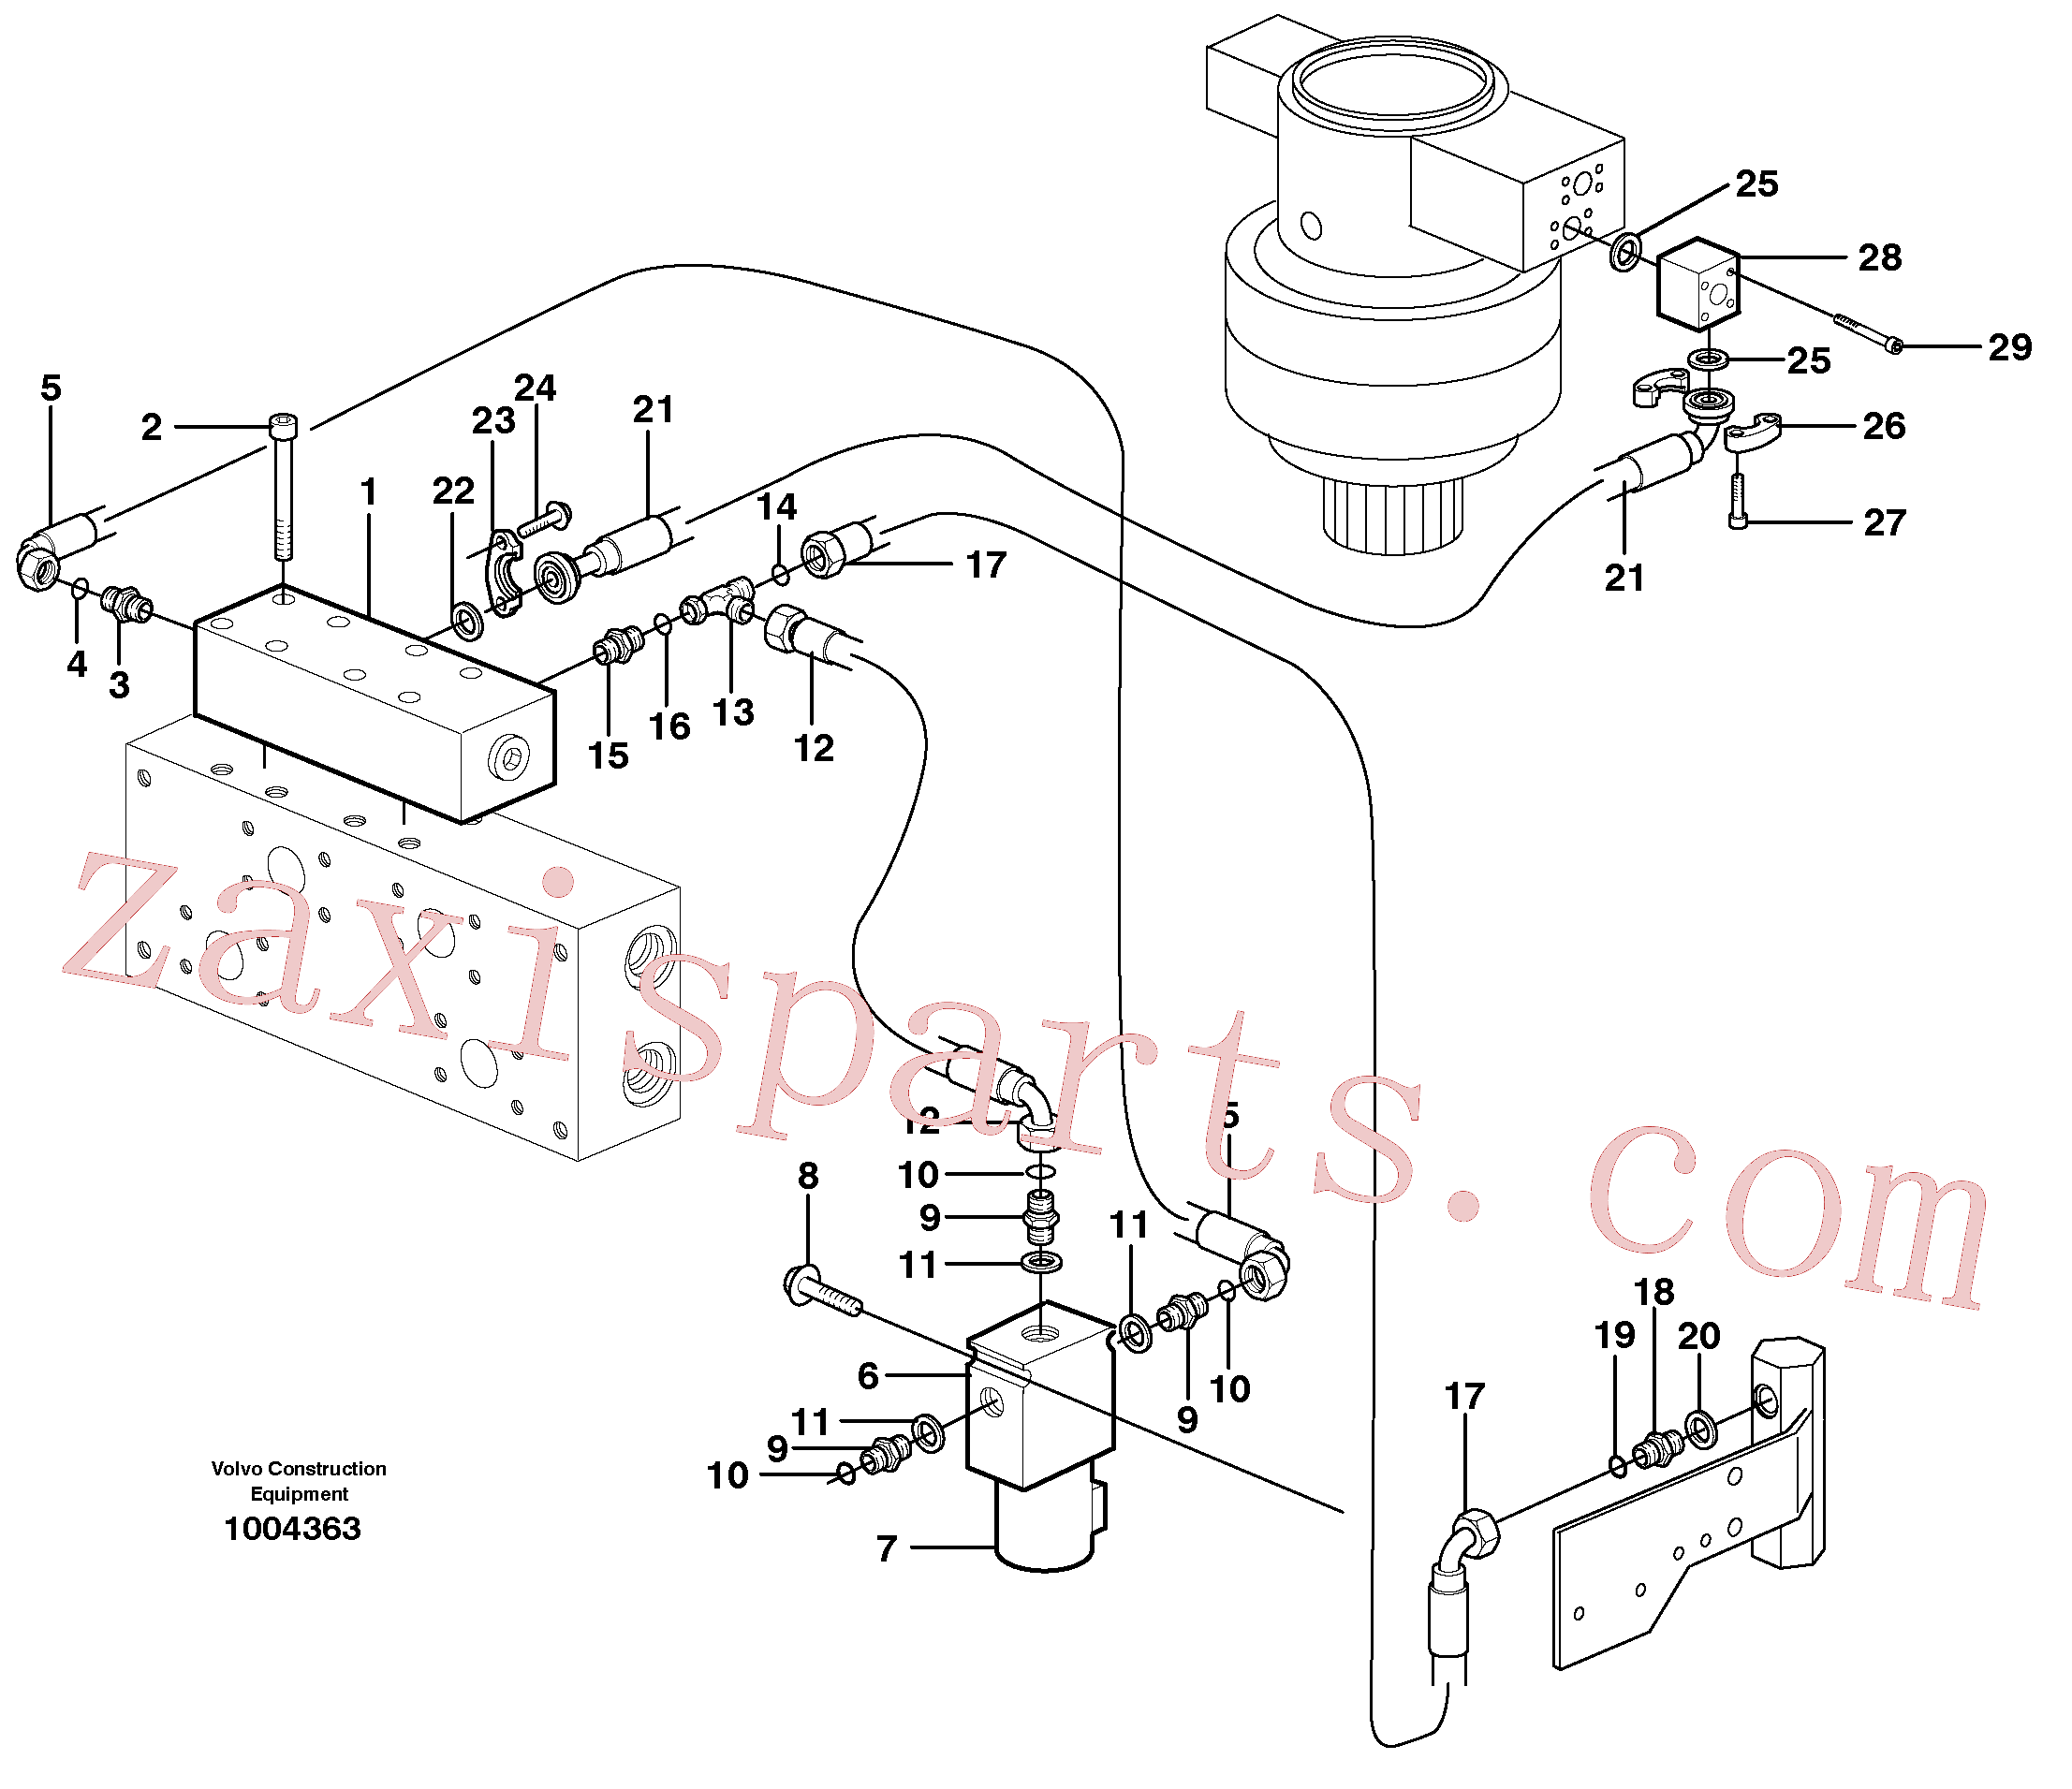 VOE14371747 for Volvo Hydraulic system, Float position valve(1004363 assembly)